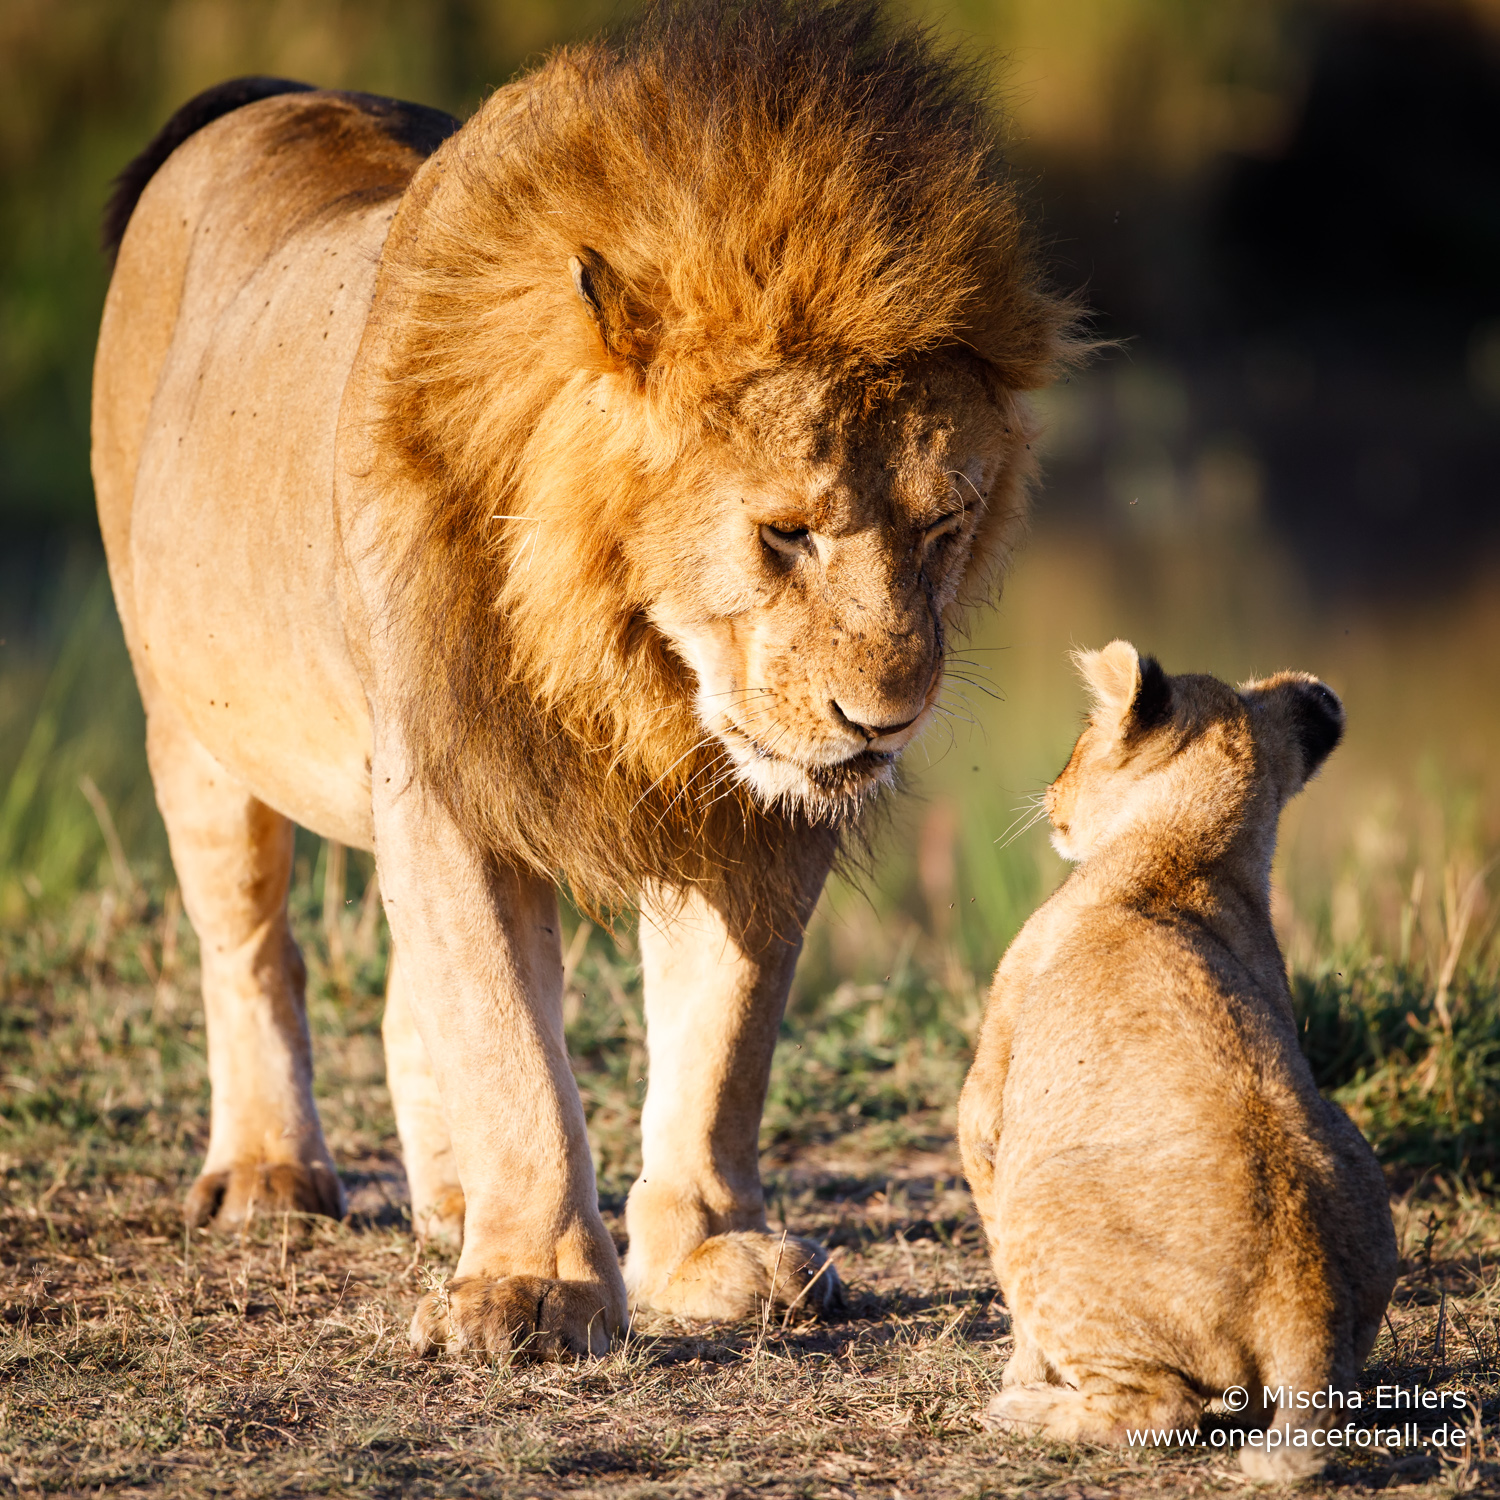 http://www.c4photosafaris.com/uploader/images/Male_Lion_and_Cub.jpg